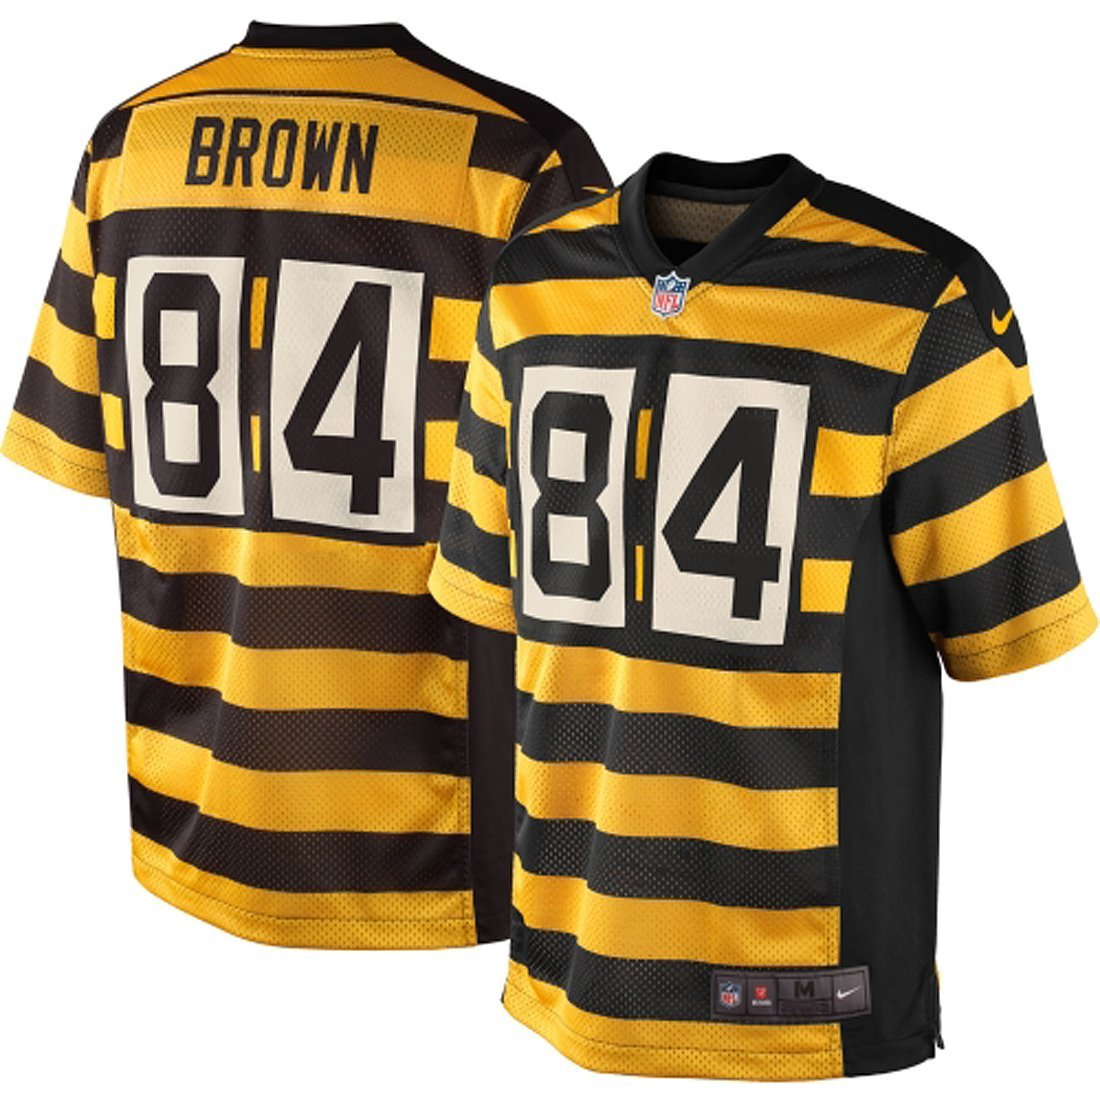 914d5928c Get Quotations · Pittsburgh Steelers Antonio Brown Youth Throwback Nike  Bumblebee Game Jersey (YOUTH MEDIUM)